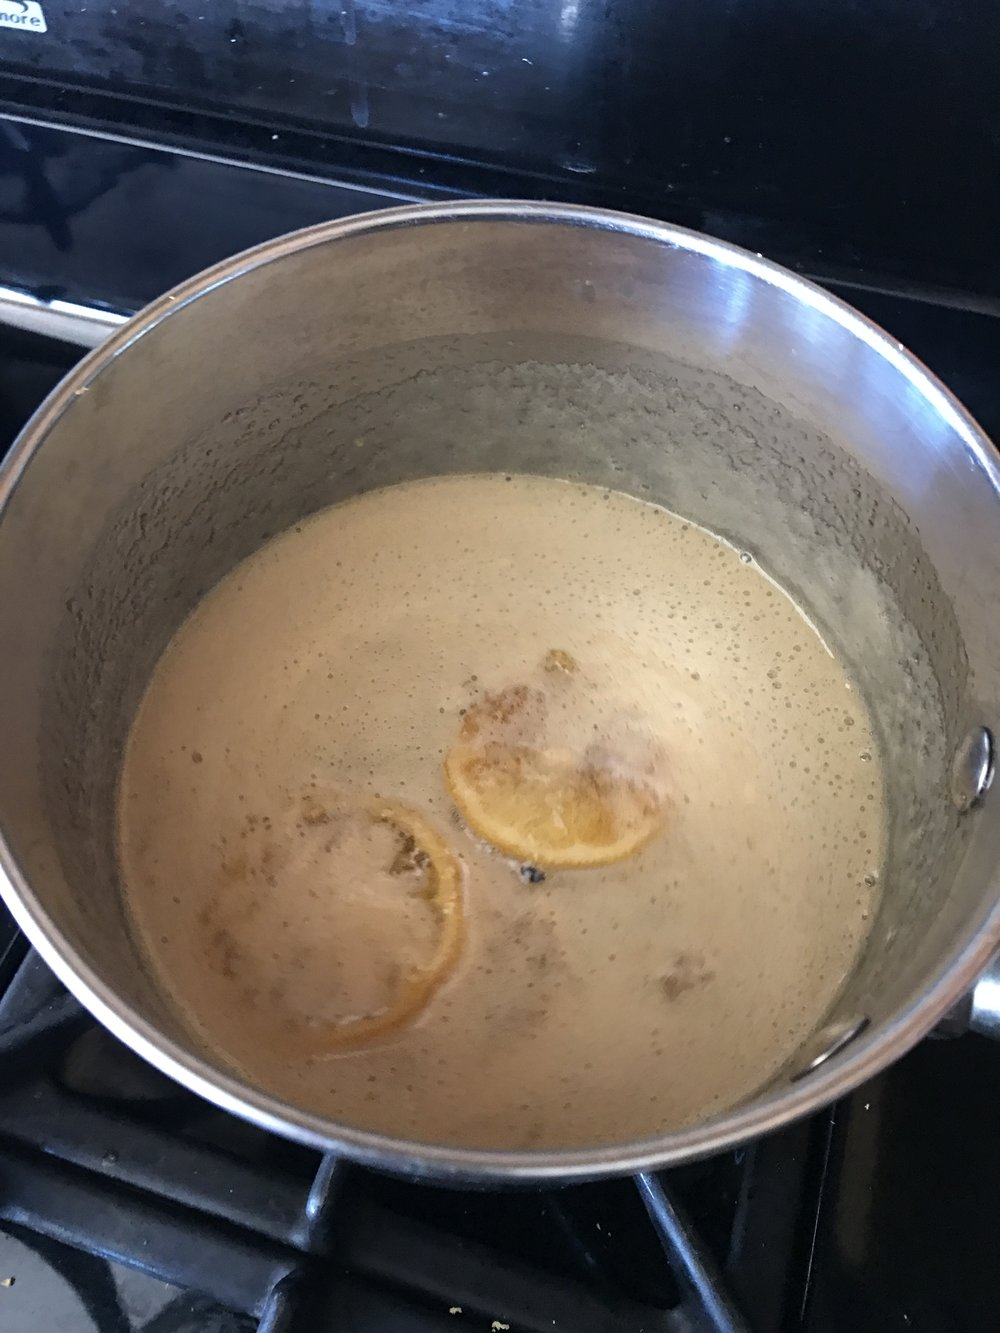 Here is the honey, some lemon slices, and the lemon zest simmering slowly.